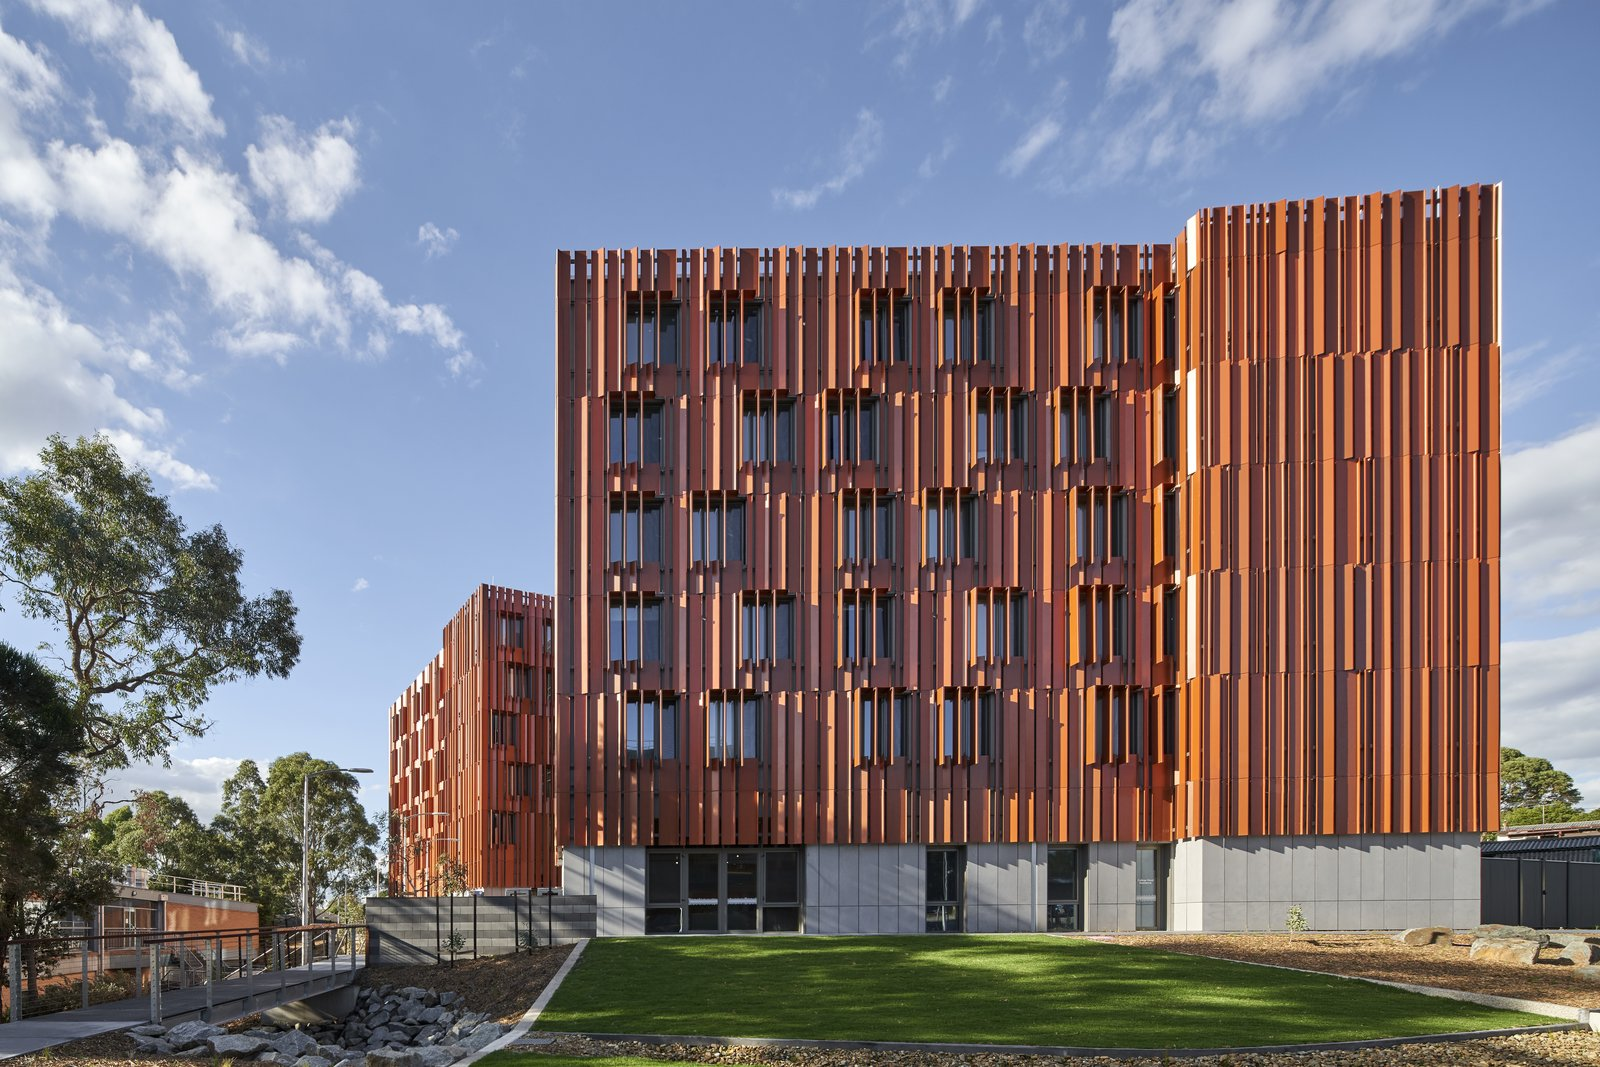 Gillies Hall at Monash University by JCB Architects folded steel exterior